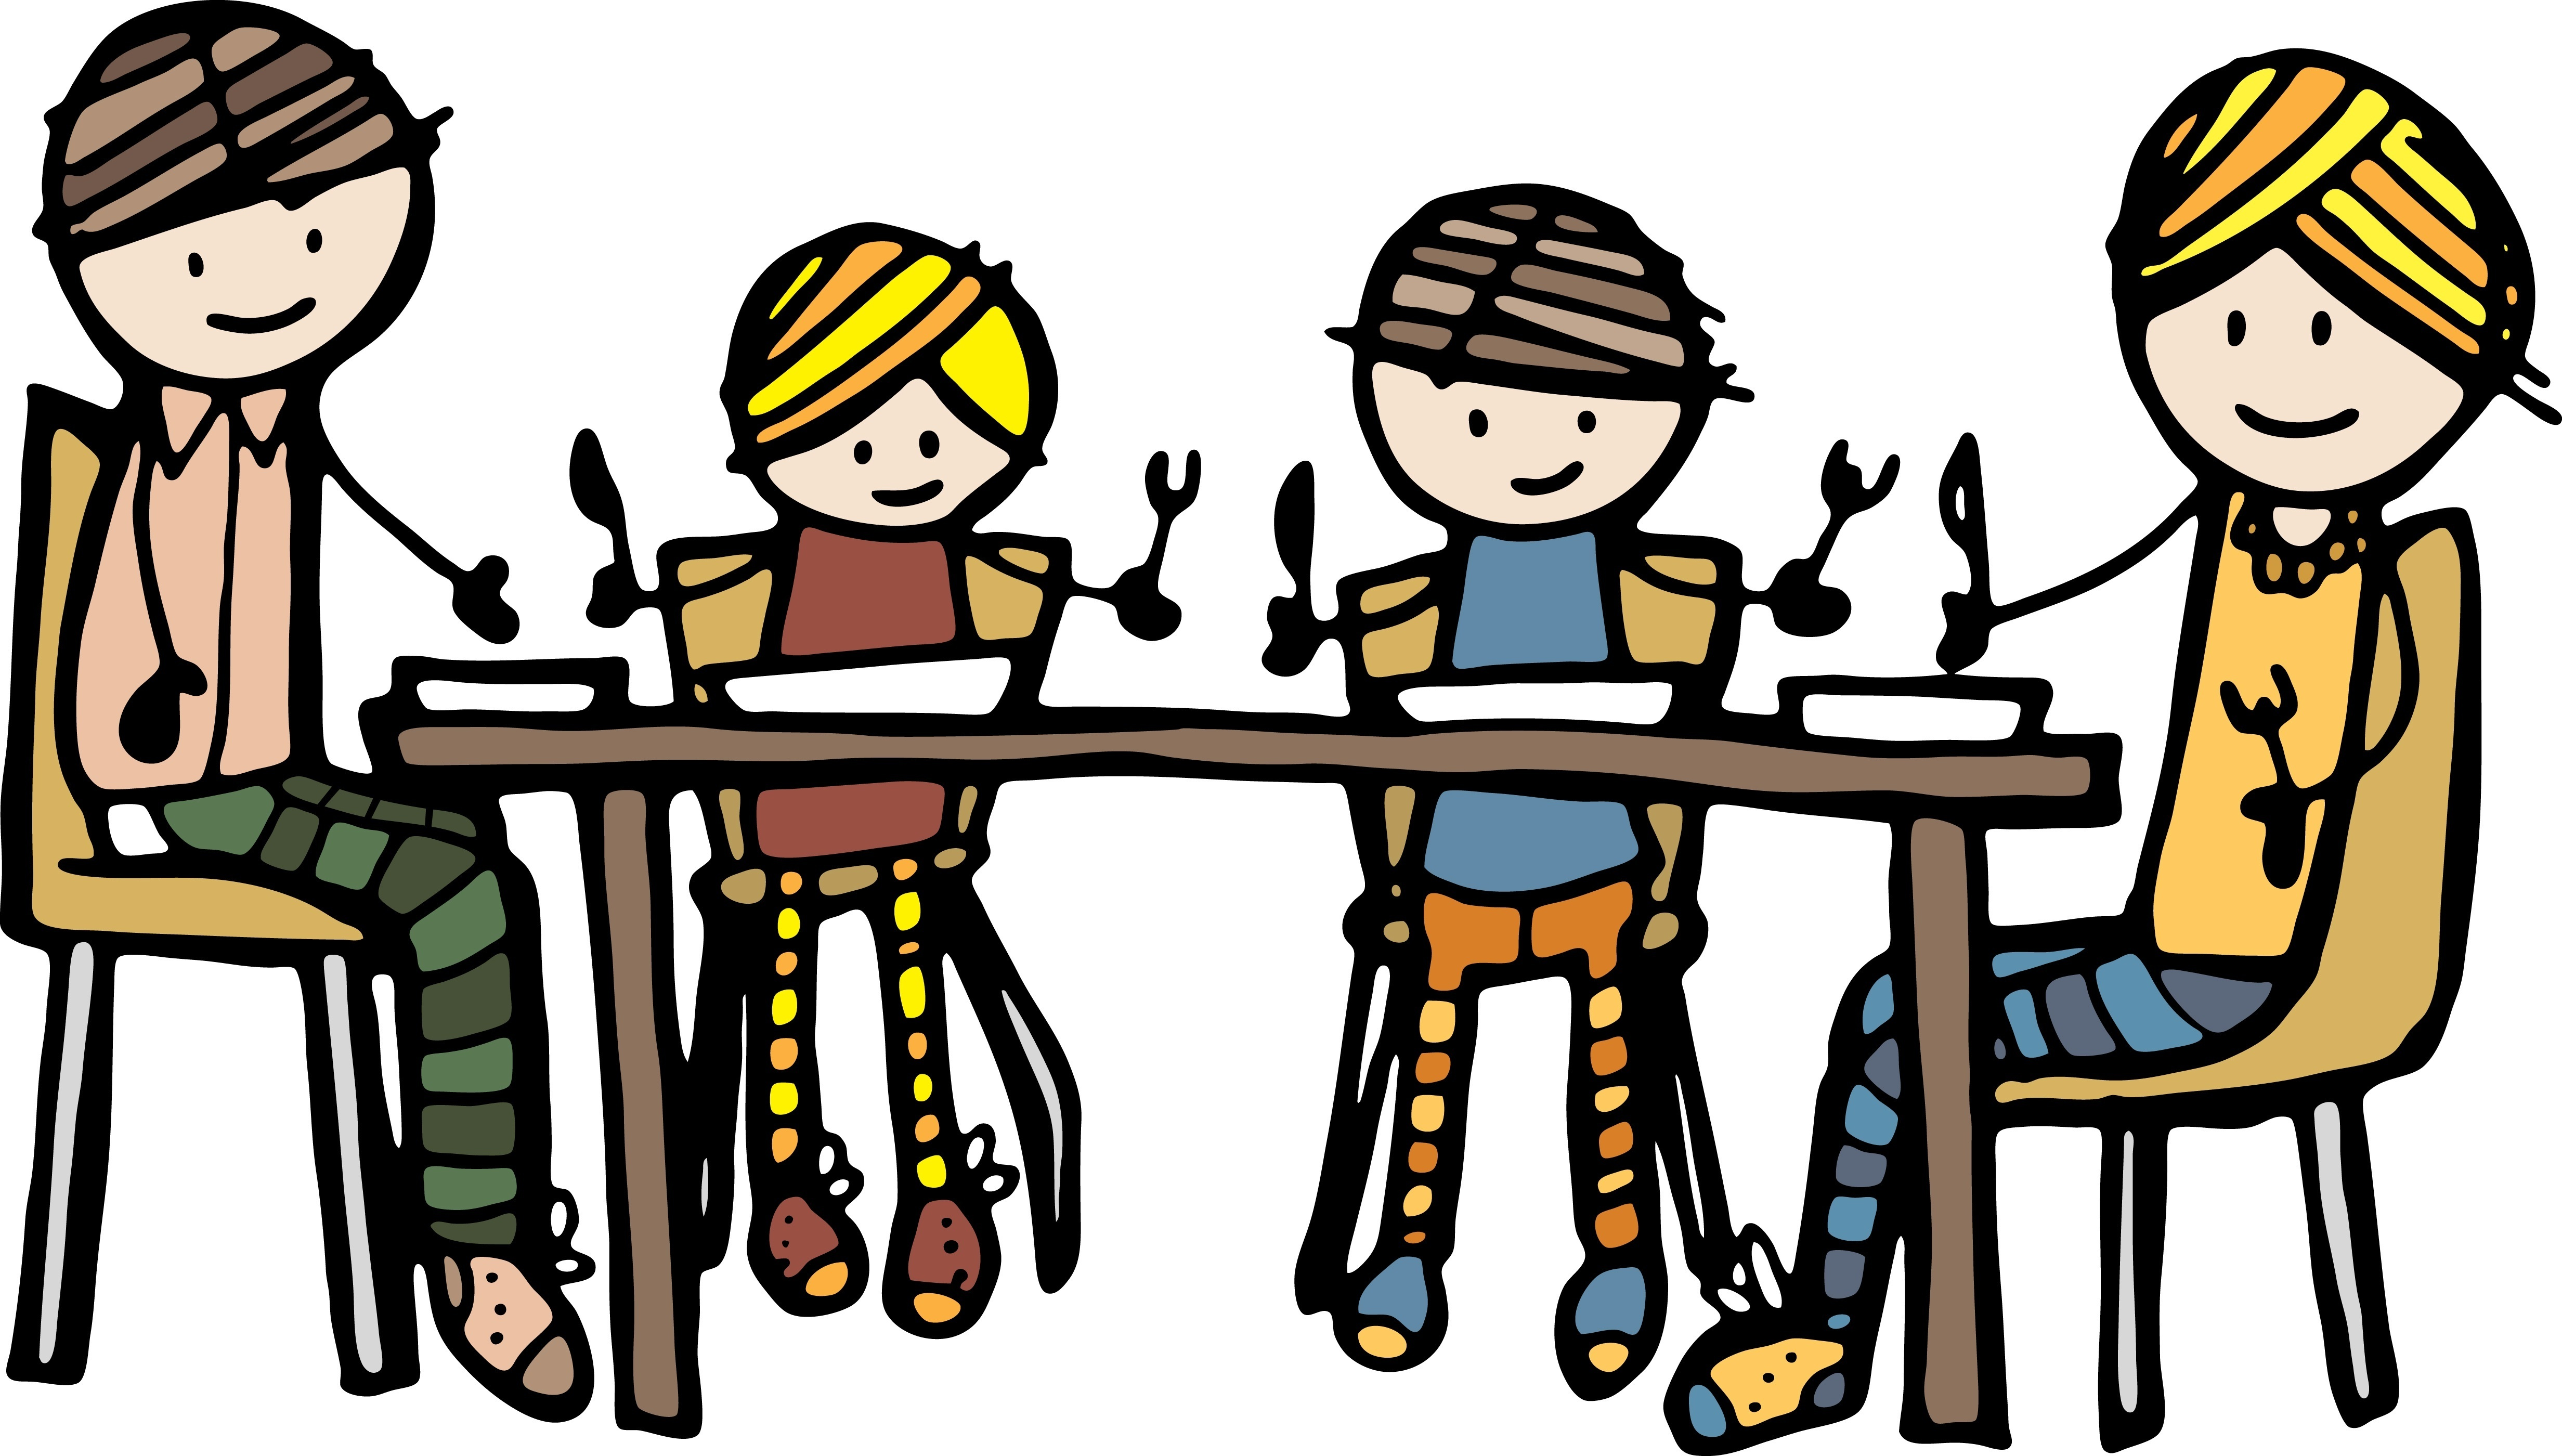 Dad clipart supper, Dad supper Transparent FREE for download.